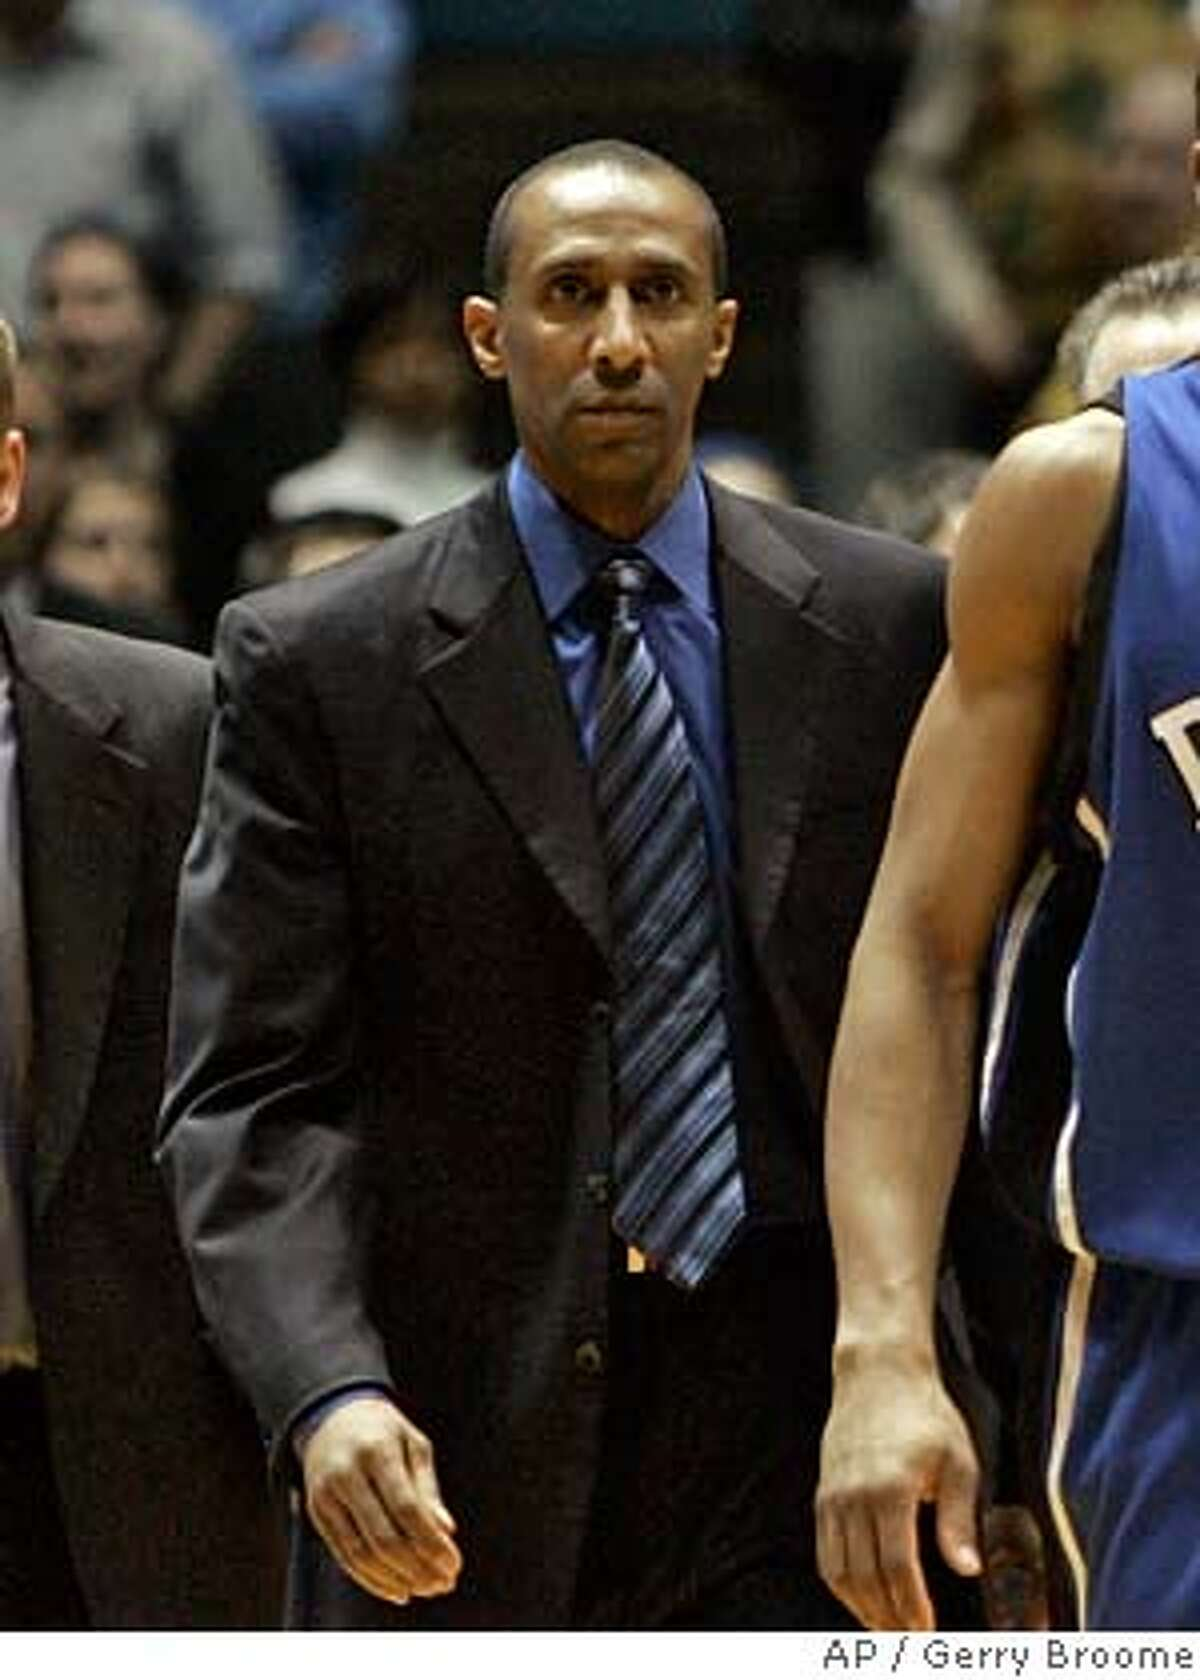 Duke's Gerald Henderson (15) leaves the court after being ejected for a flagrant foul on North Carolina's Tyler Hansbrough during the second half of a college basketball game in Chapel Hill, N.C., Sunday, March 4, 2007. North Carolina won, 86-72. From left are assistant coaches Steve Wojciechowski and Johnny Dawkins.(AP Photo/Gerry Broome)